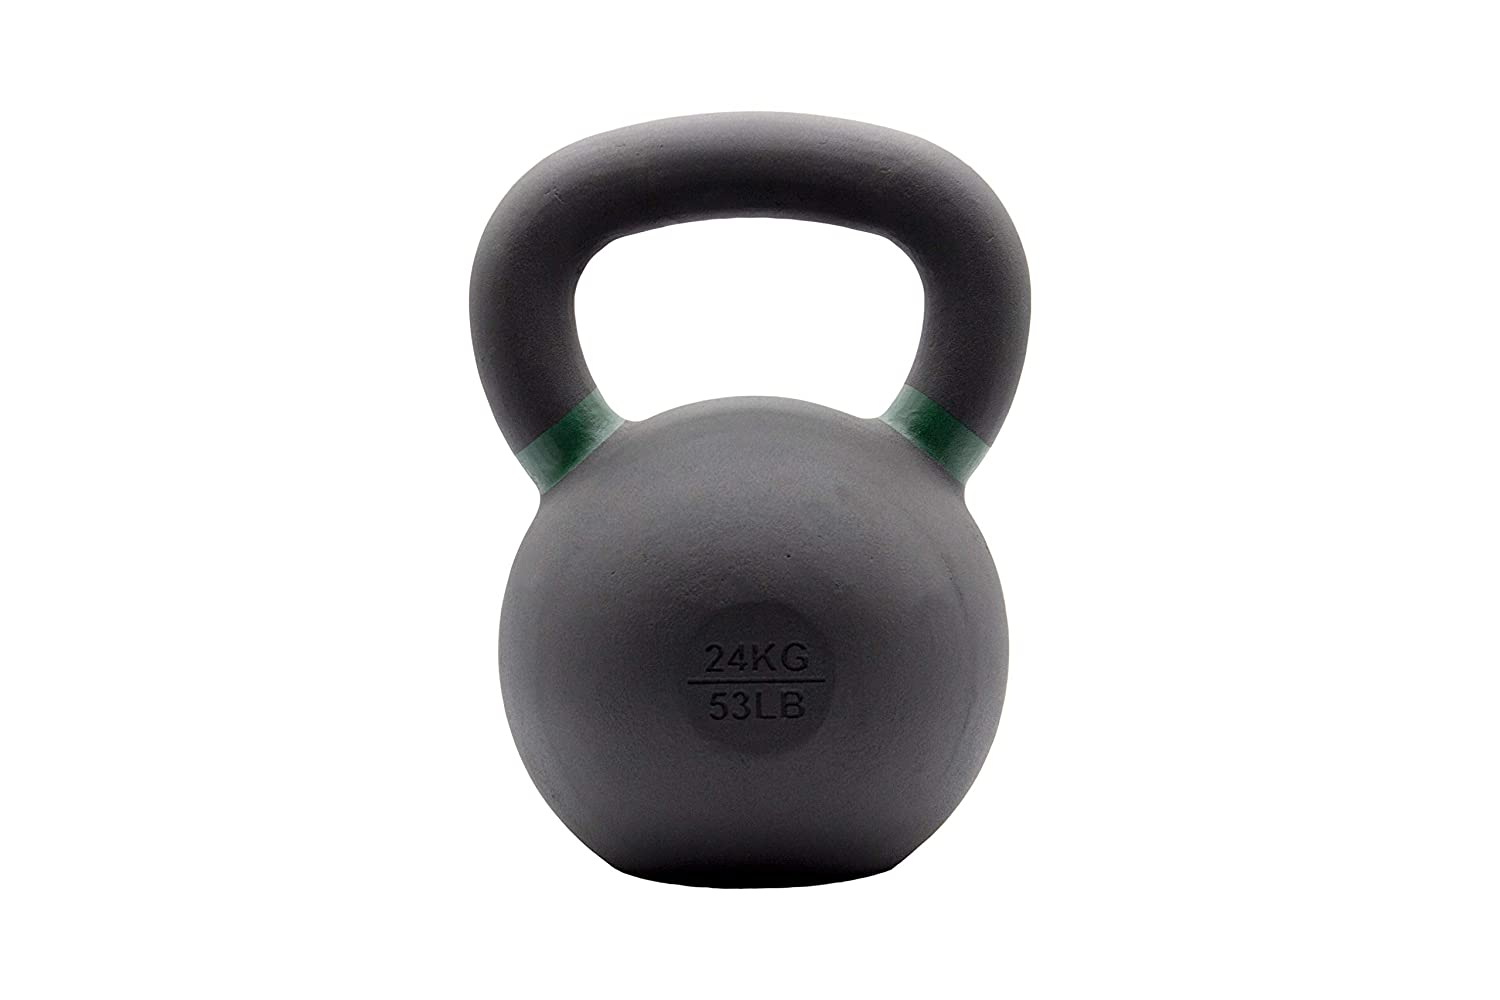 Kettlebell Kings Kettlebell Weights Powder Coat Kettlebell Weights for Women Men Powder Coating for Durability, Rust Resistance Longevity